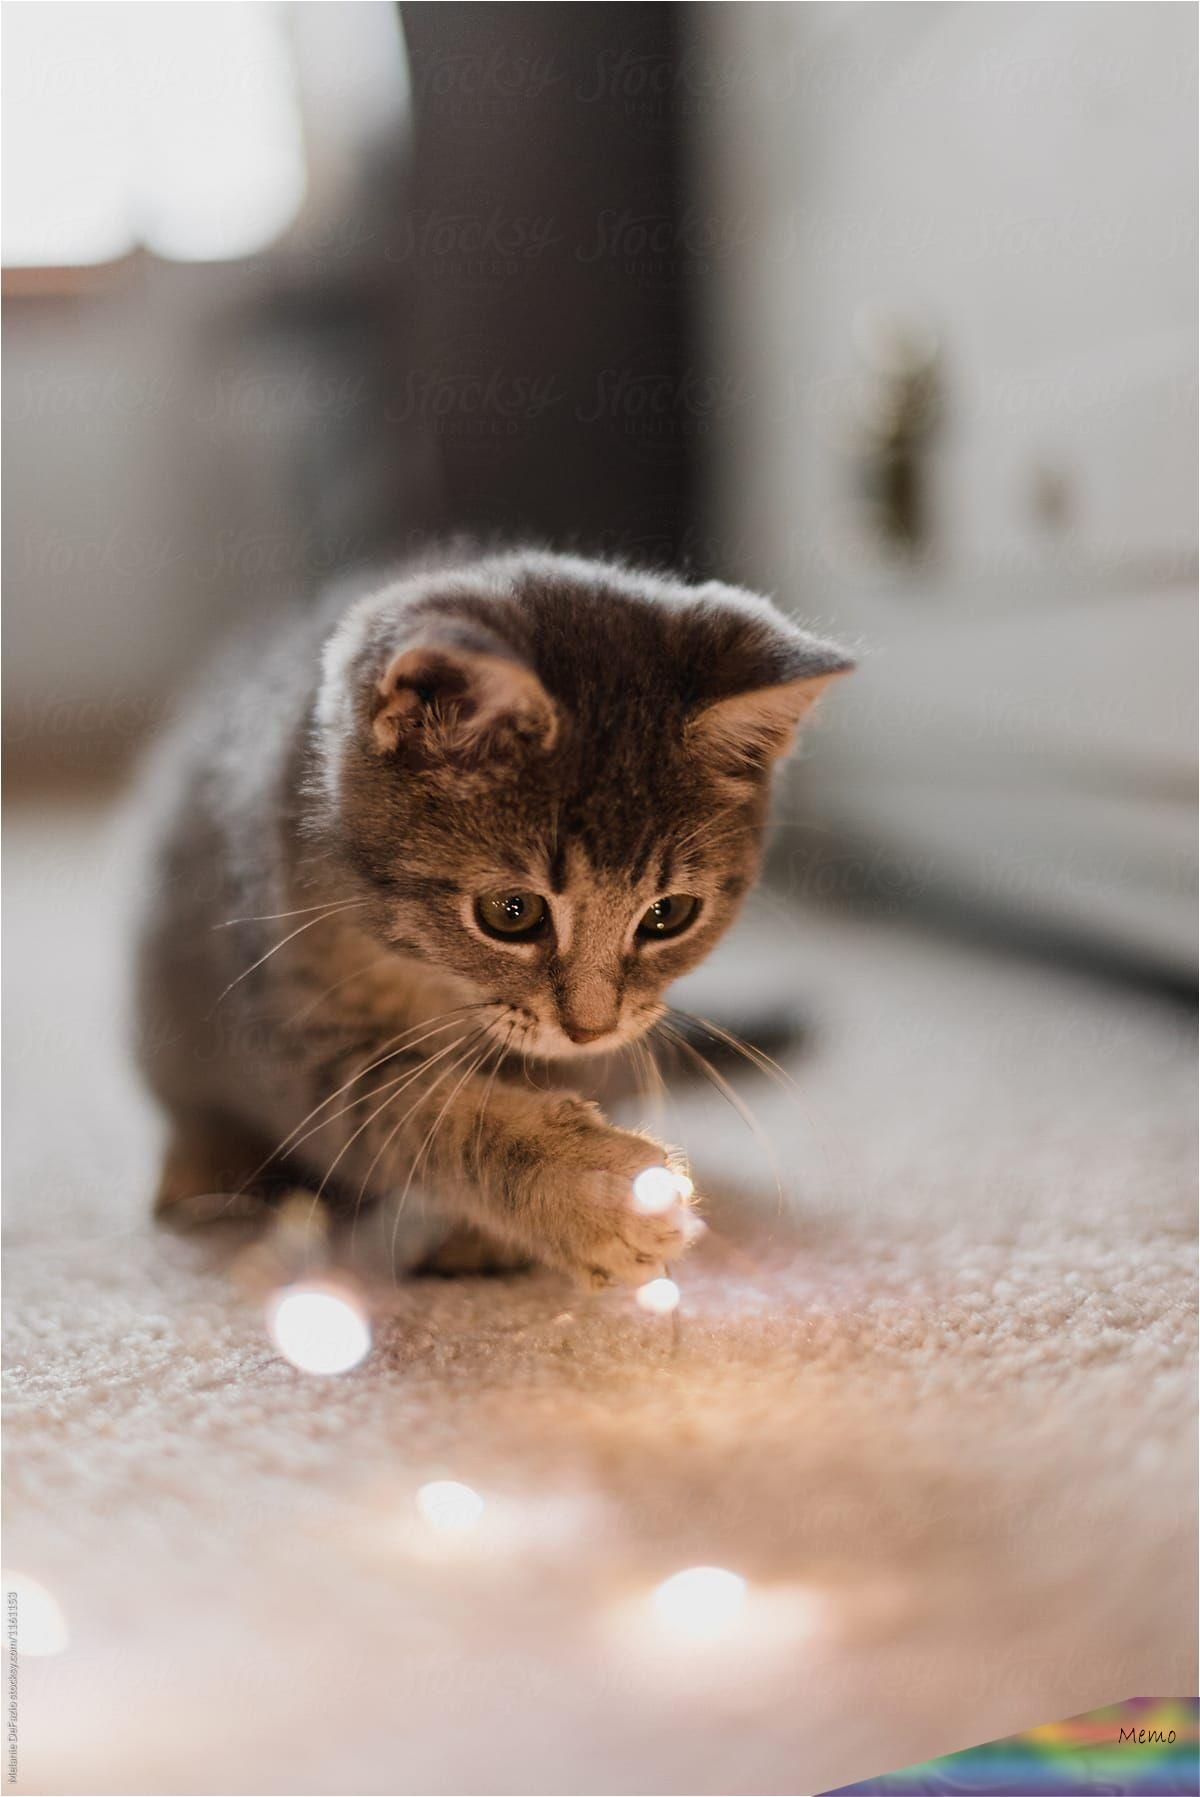 Oct 4 2019 A Cute Little Kitten Playing With Christmas Lights In 2020 Baby Cats Cute Animals Cute Baby Cats